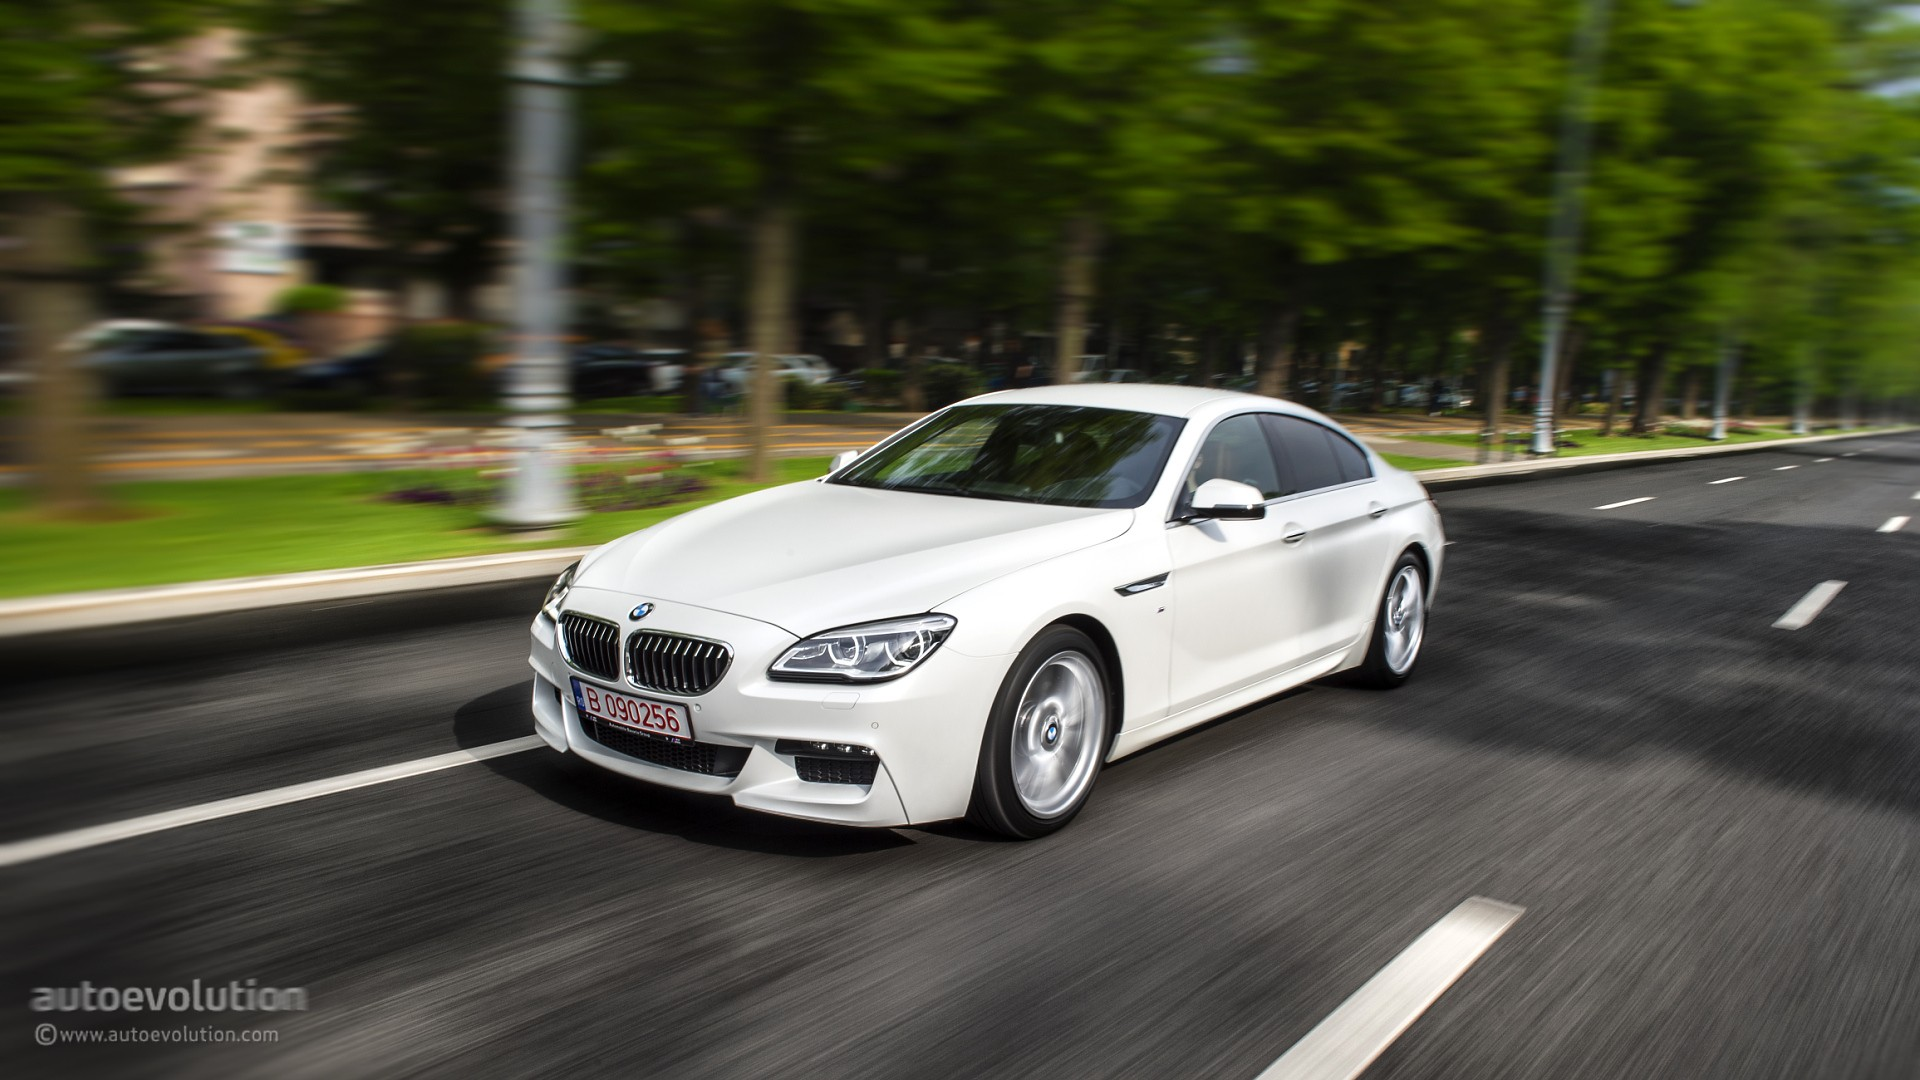 2016 Bmw 6 Series Gran Coupe #5